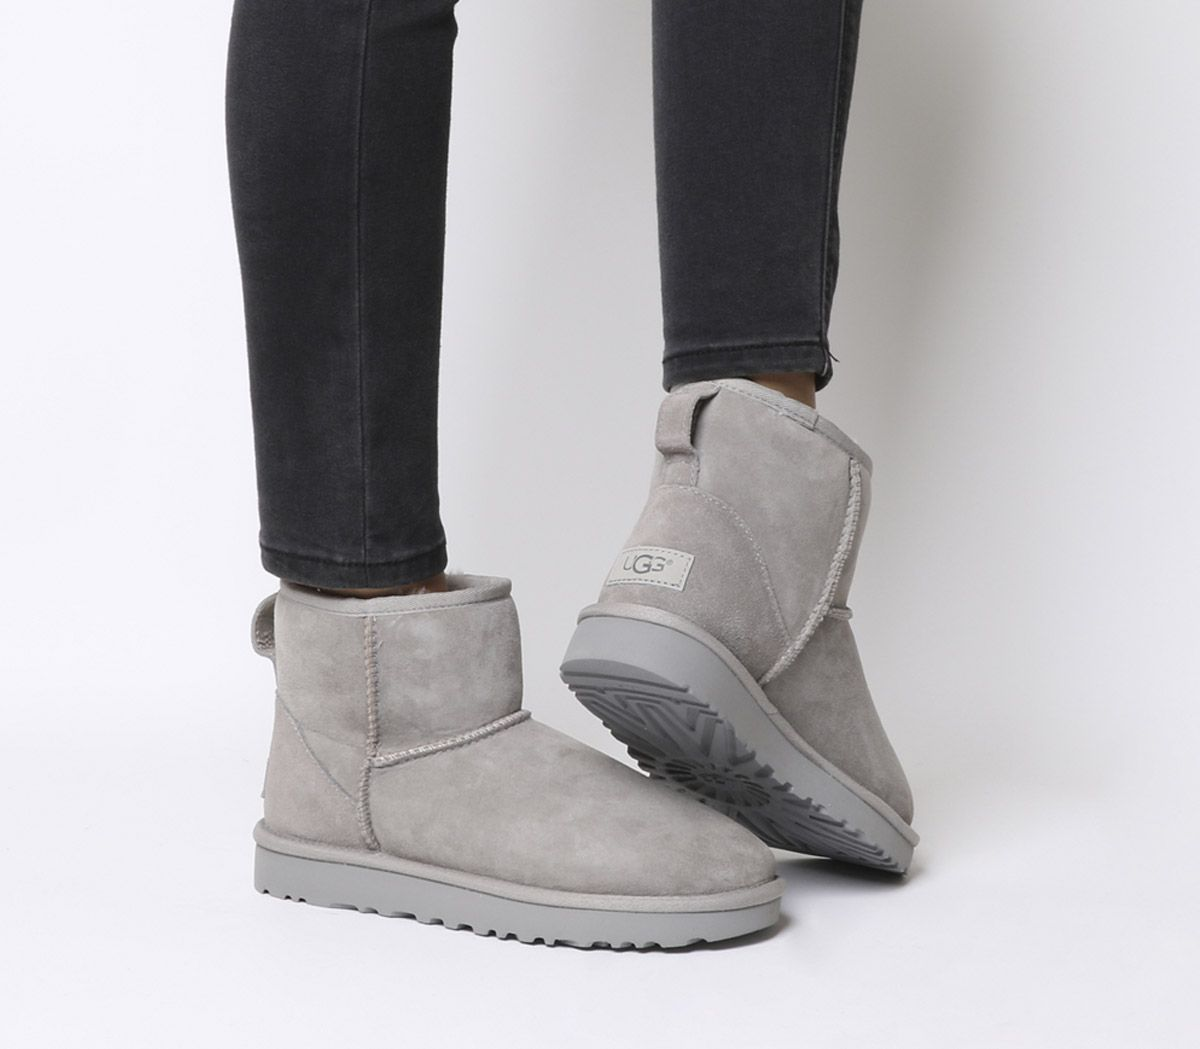 ee19016b1cd UGG Classic Mini II Boots Seal - Ankle Boots